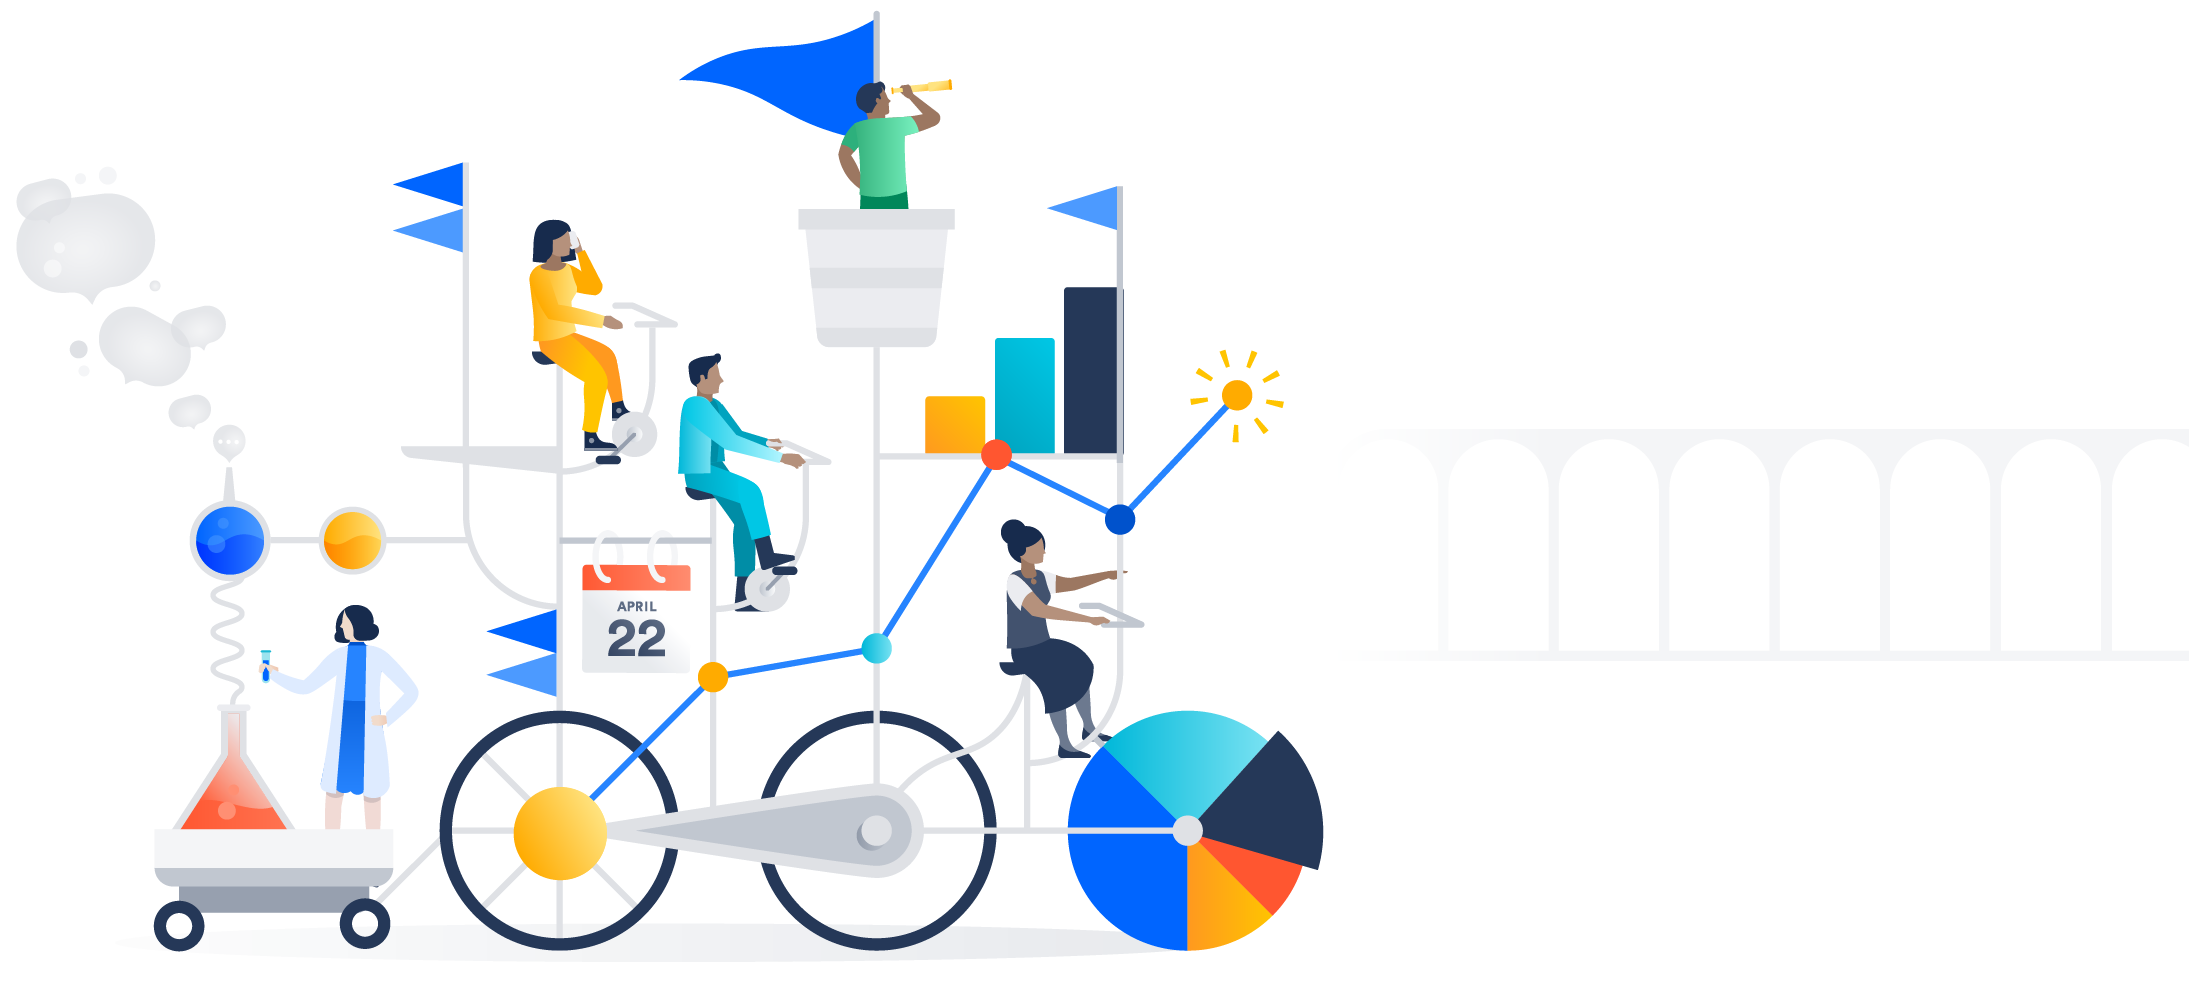 Illustration of multiple people on an intricate bike